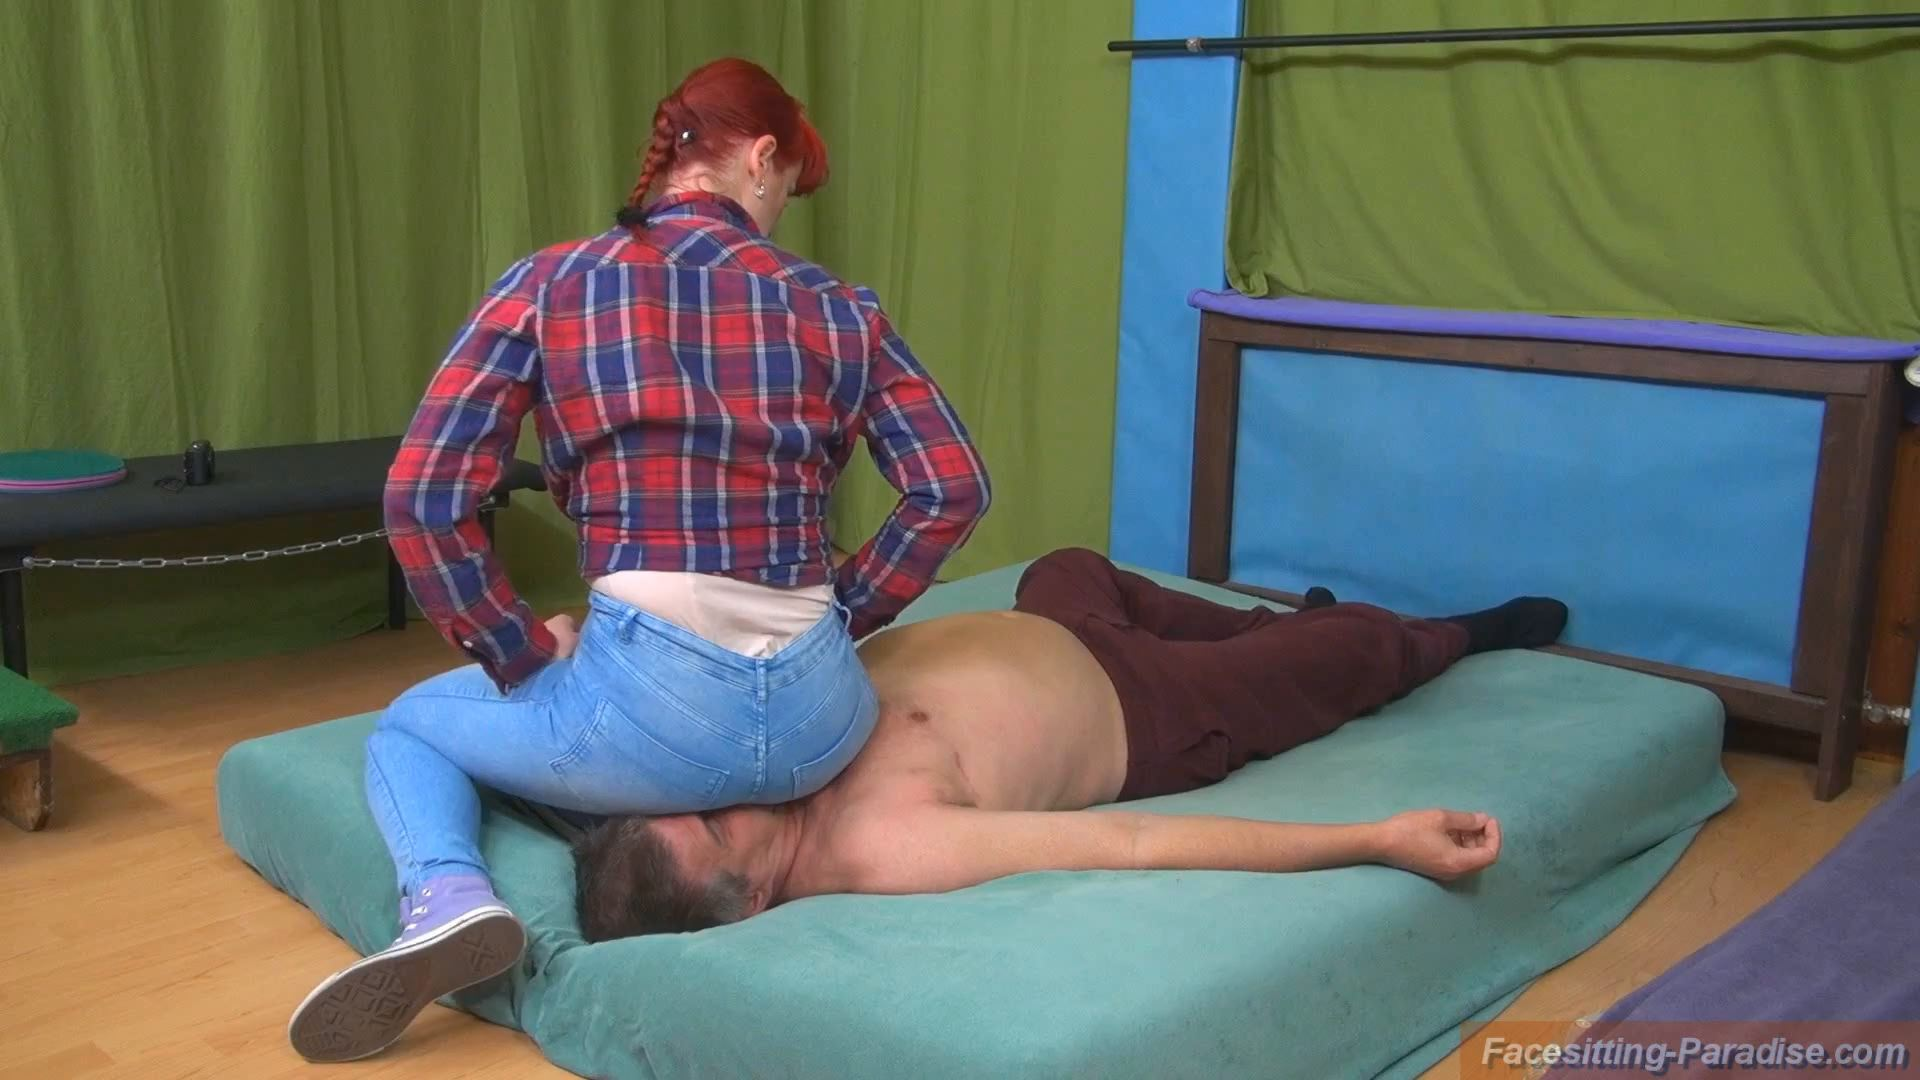 Anabela In Scene: Enjoy my jeans-ass on your face - FACESITTING-PARADISE - FULL HD/1080p/MP4